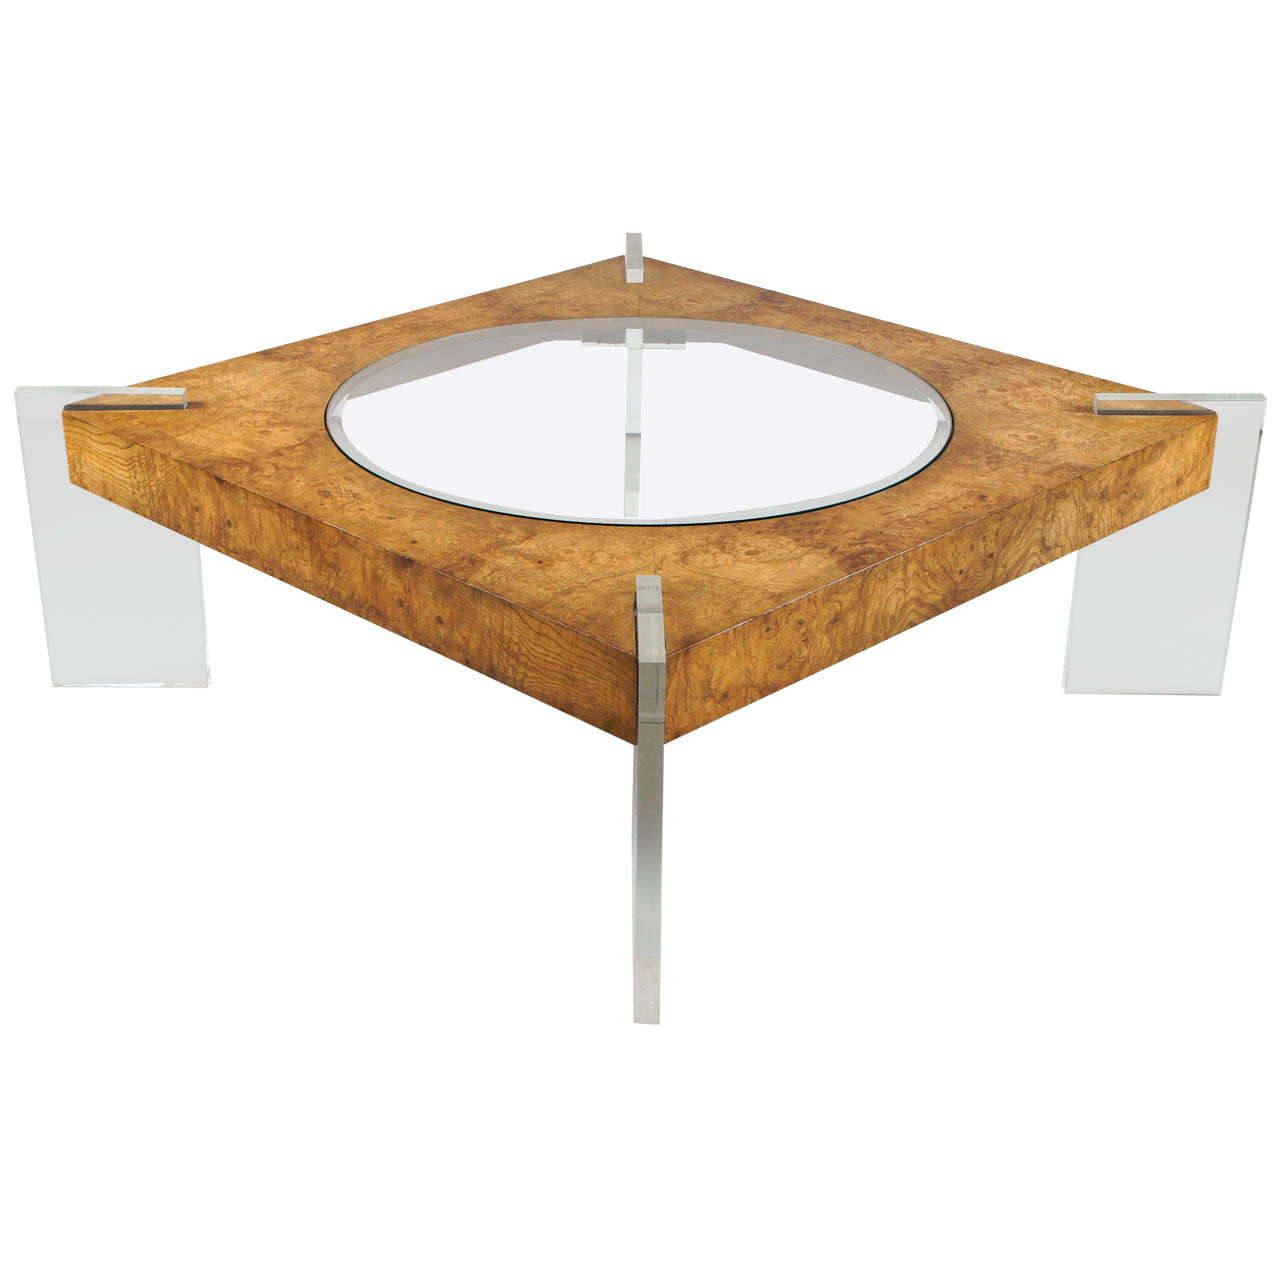 1970 39 S Burled Walnut Coffee Table By Vladimir Kagan At 1stdibs